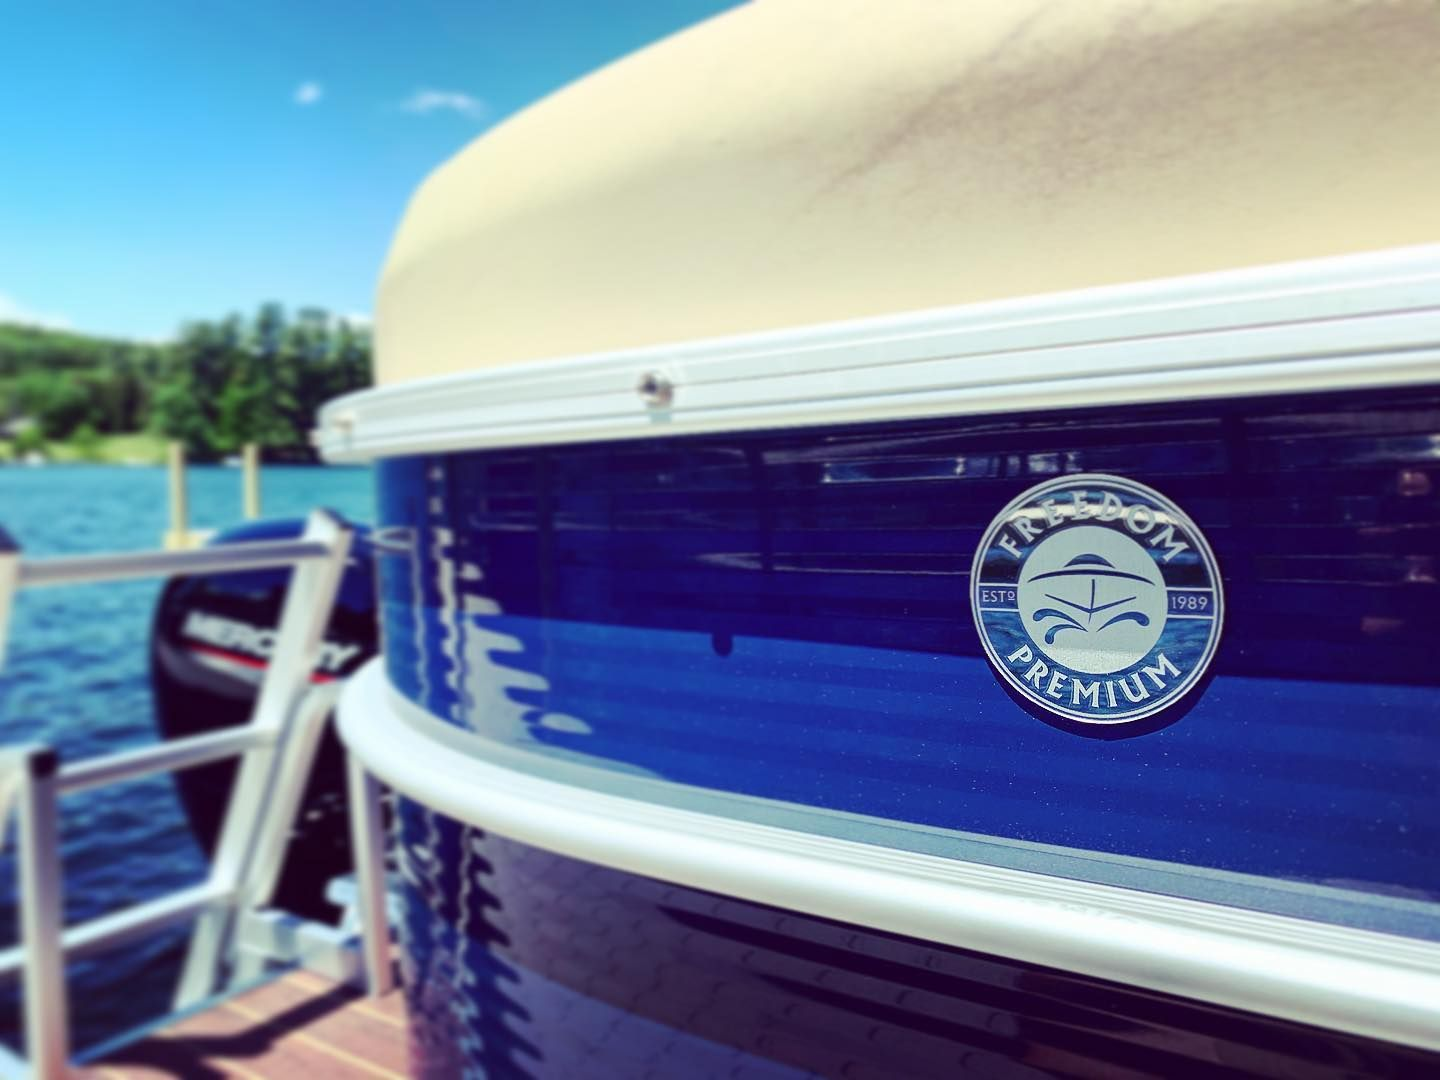 Loving This Special Touch From Godfreypontoons On Our Sweetwater Freedom Edition Tritoons Sweetwater Boat Photo